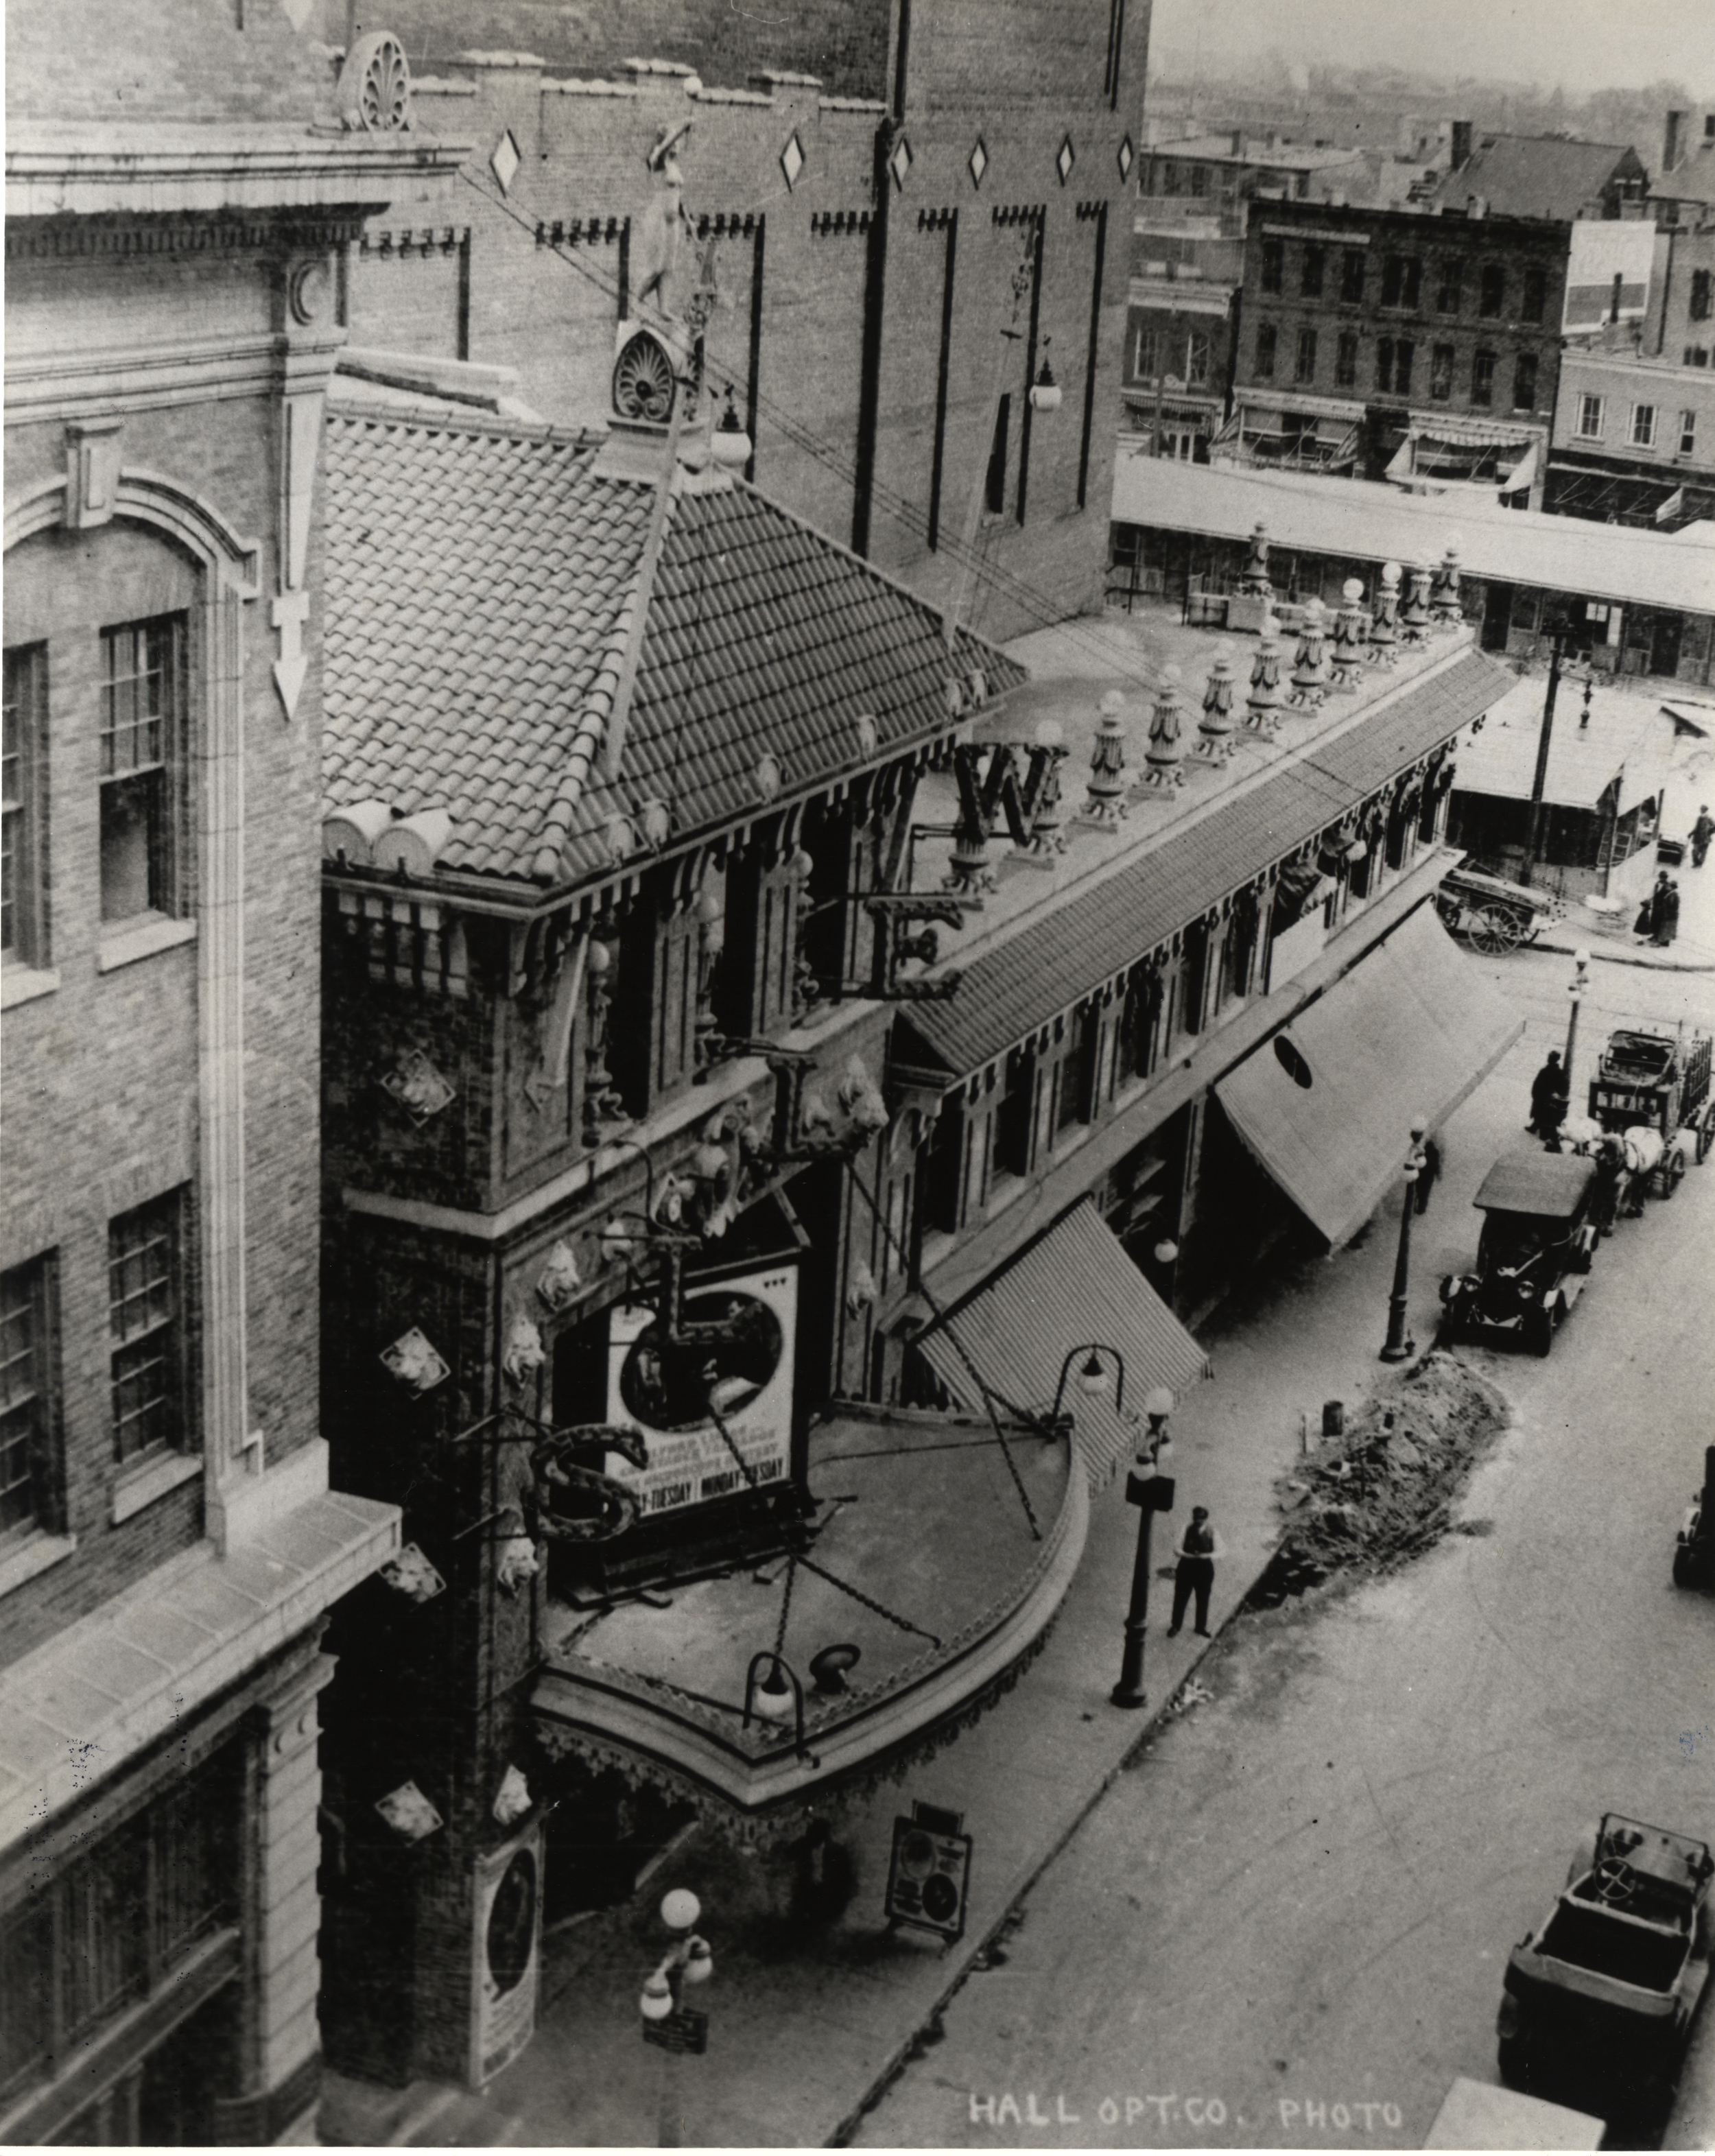 The Wells Theatre and Tazewell Street in the 1920s